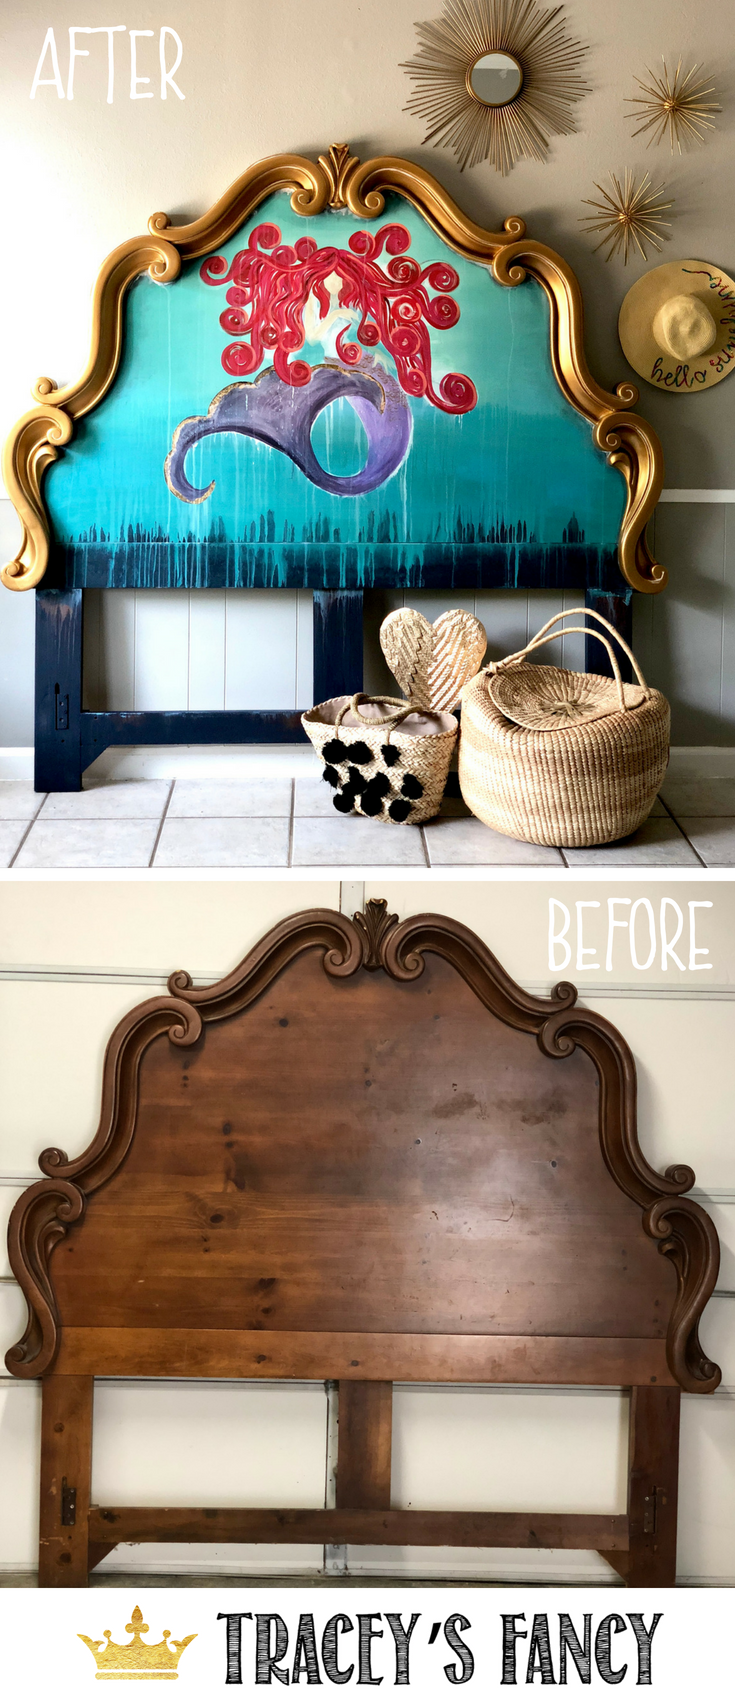 Mermaid Headboard and Whimsical Painted Headboard Ideas by Tracey's Fnacy #Furnituremakeover